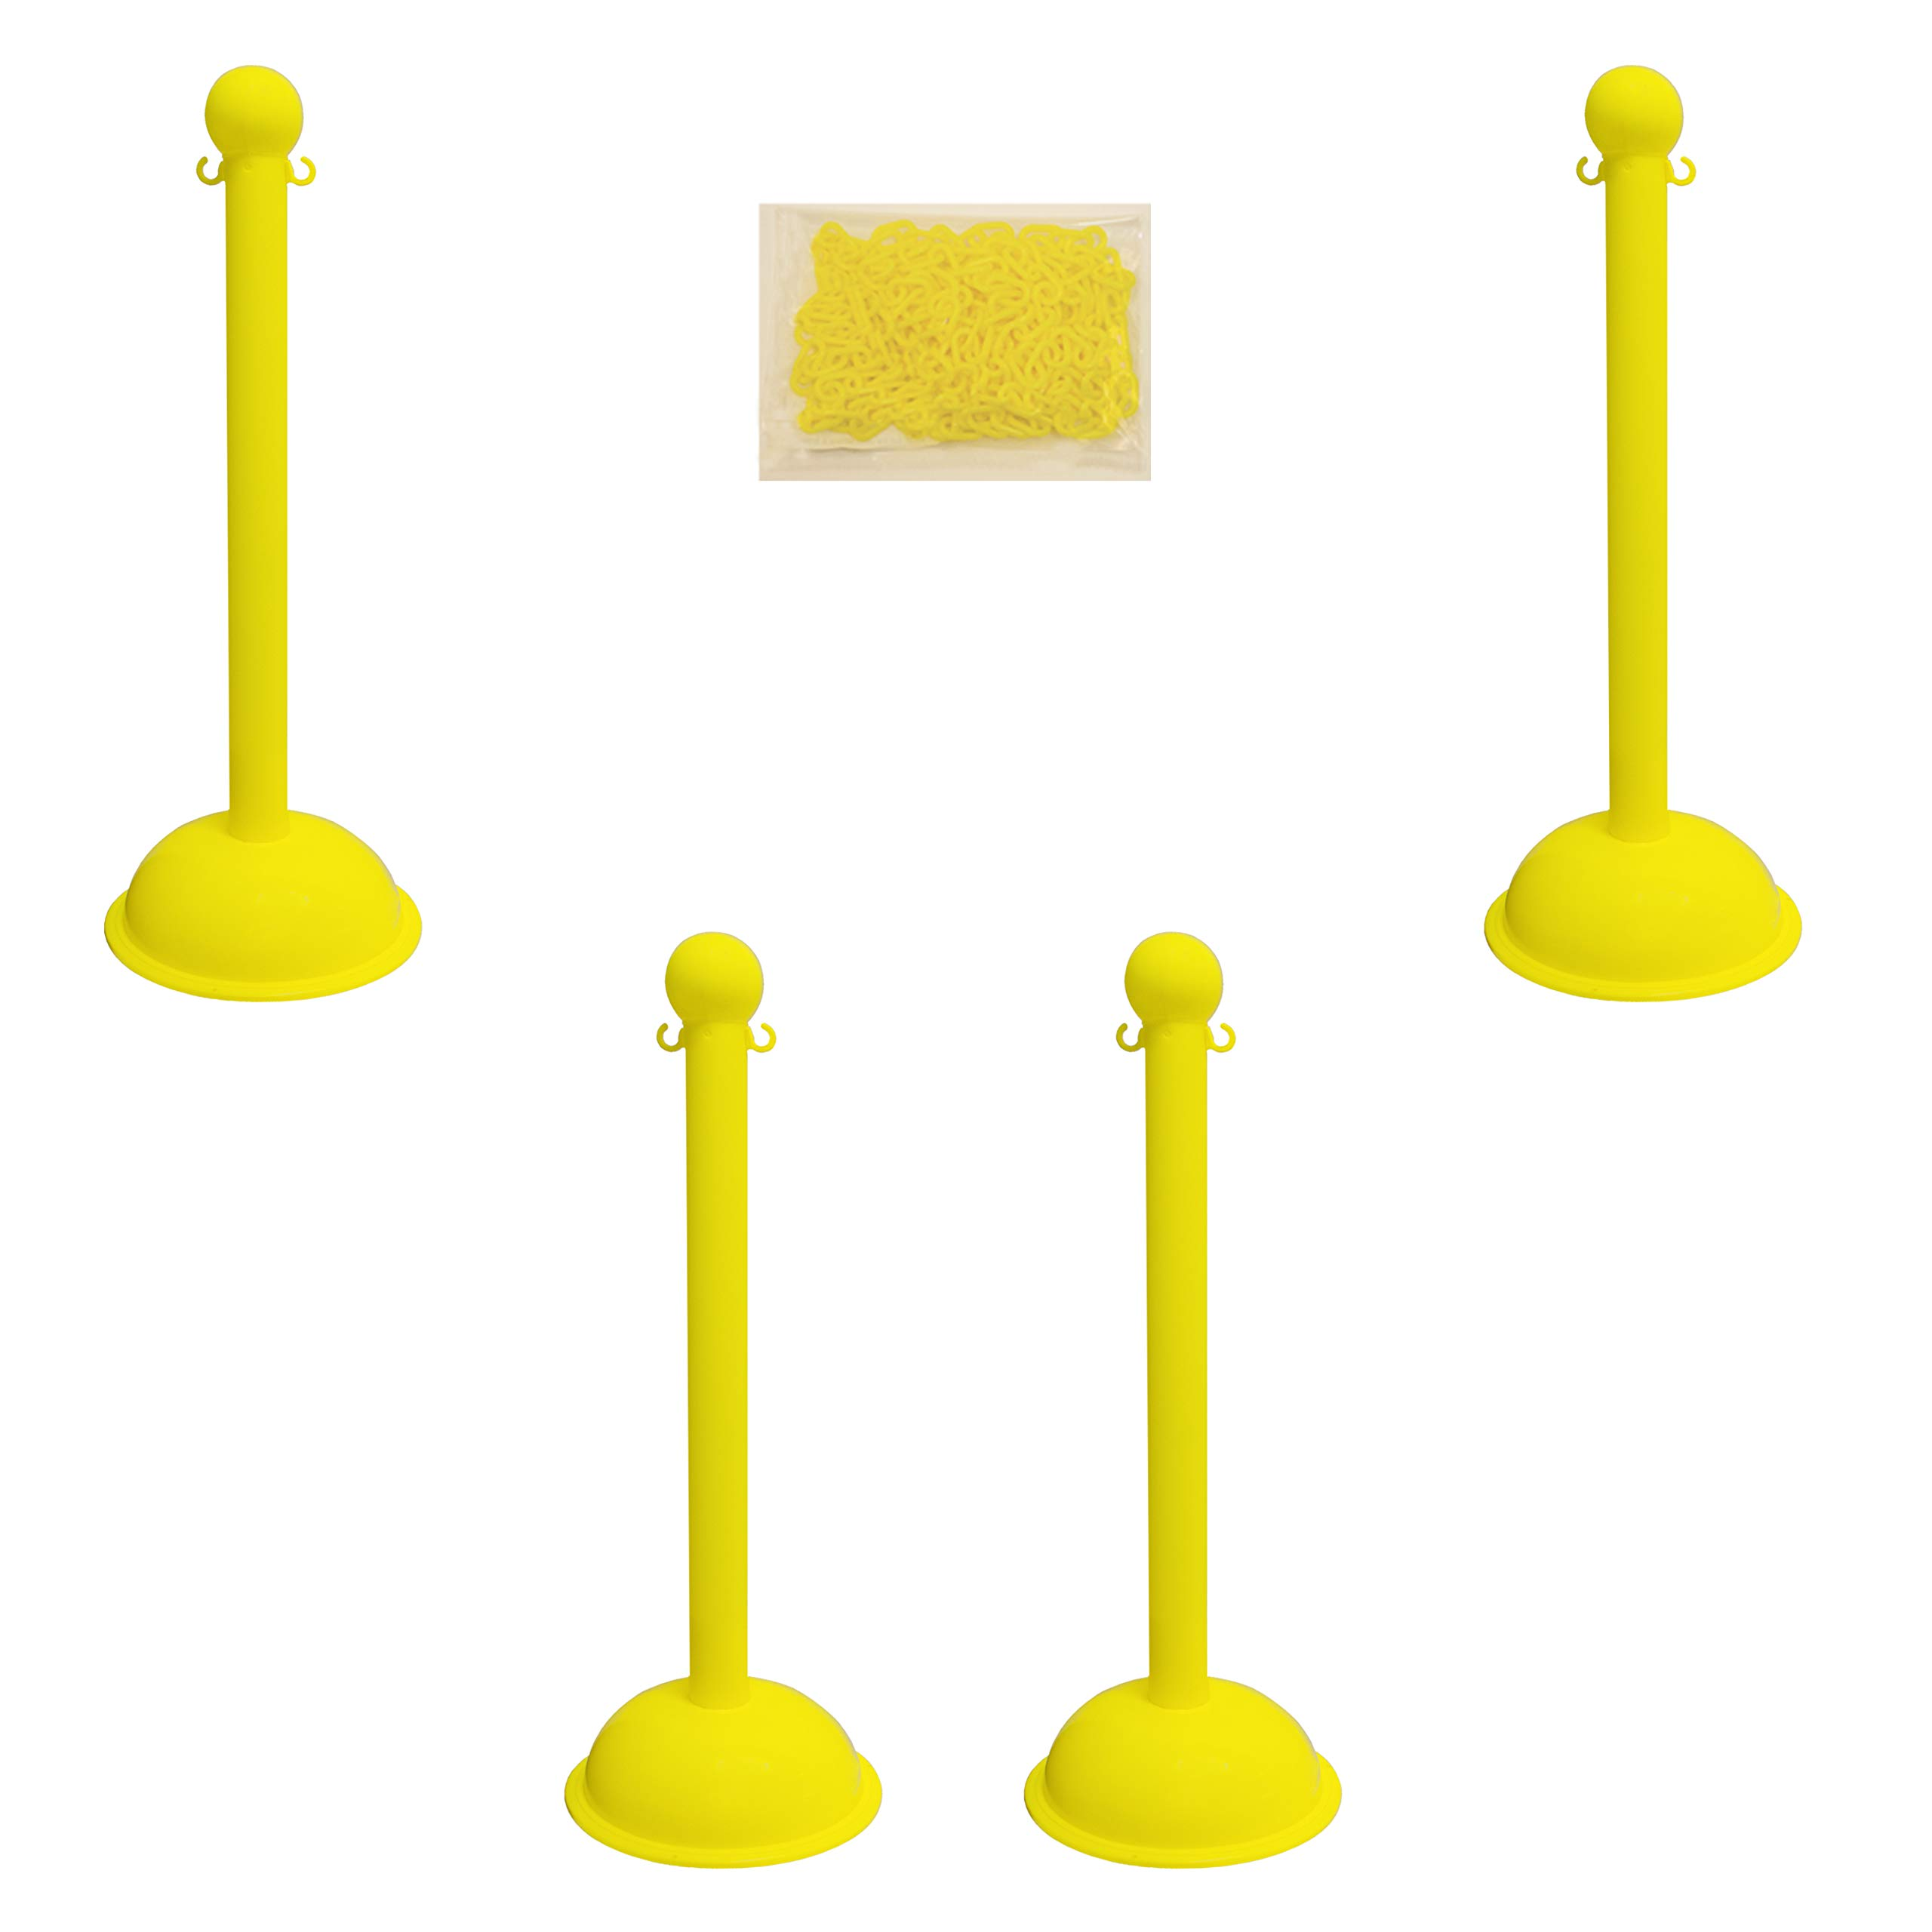 Mr. Chain 71302-4 Yellow Plastic Stanchion Kit with 30' of 2'' HD chain and C-Hooks, Pack of 4